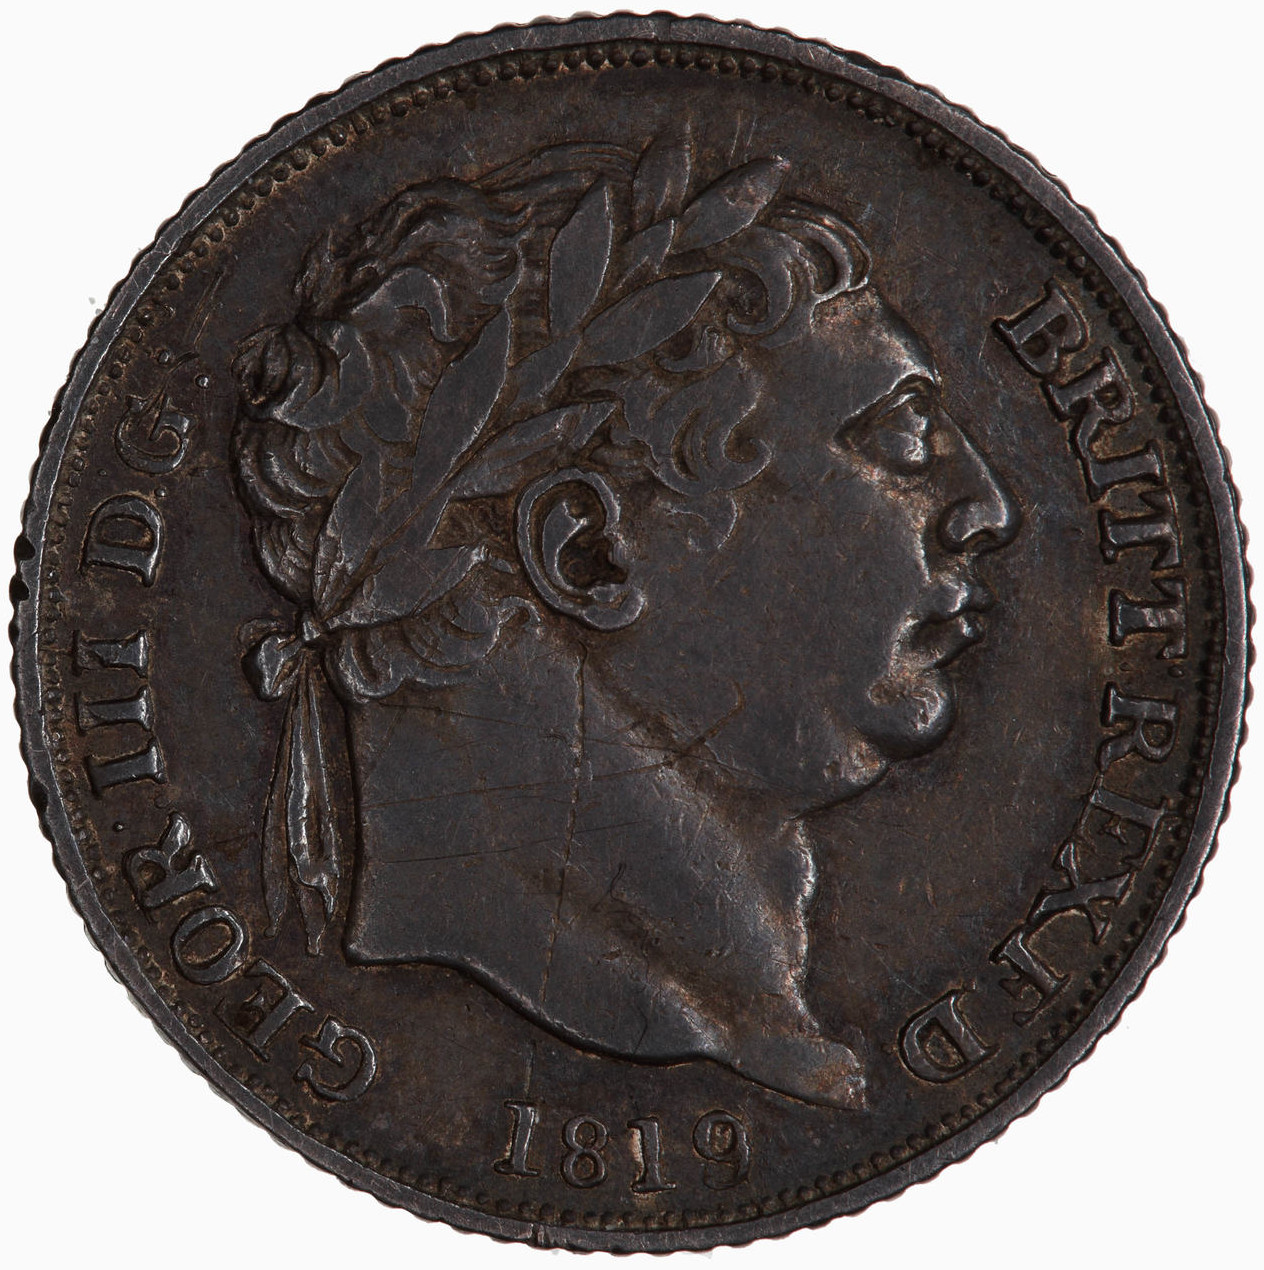 Sixpence 1819: Photo Coin - Sixpence, George III, Great Britain, 1819